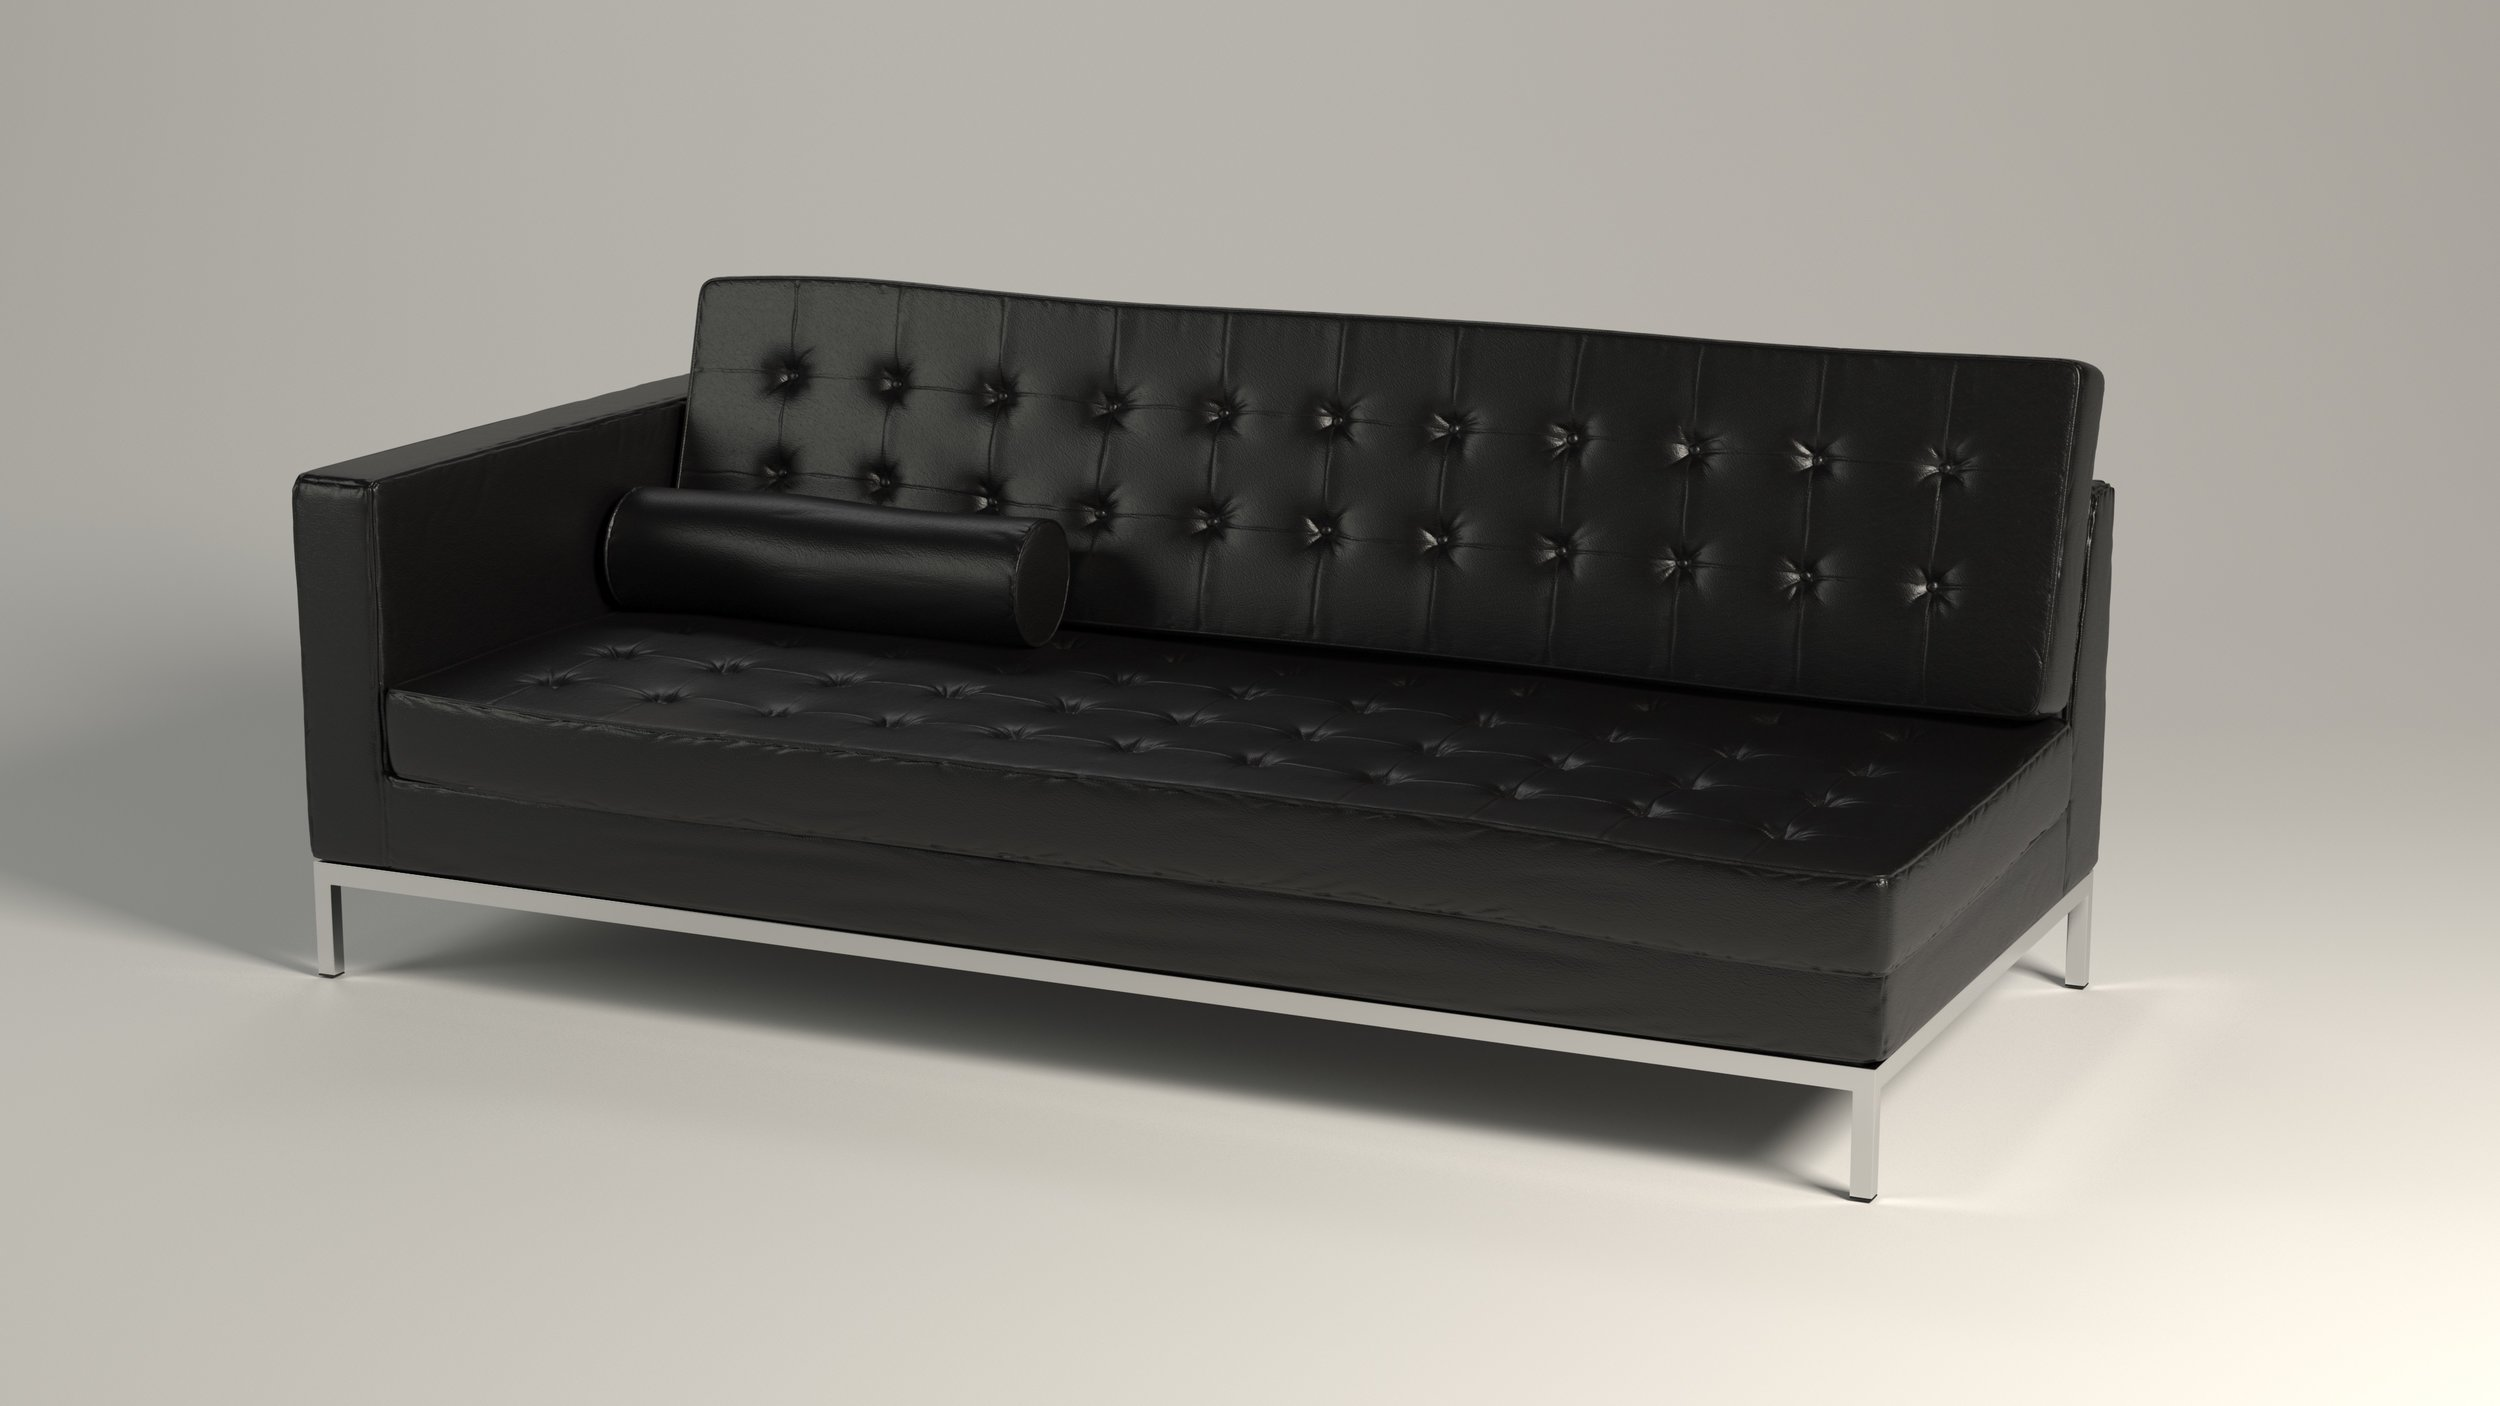 Furniture Model, Black Leather Sofa